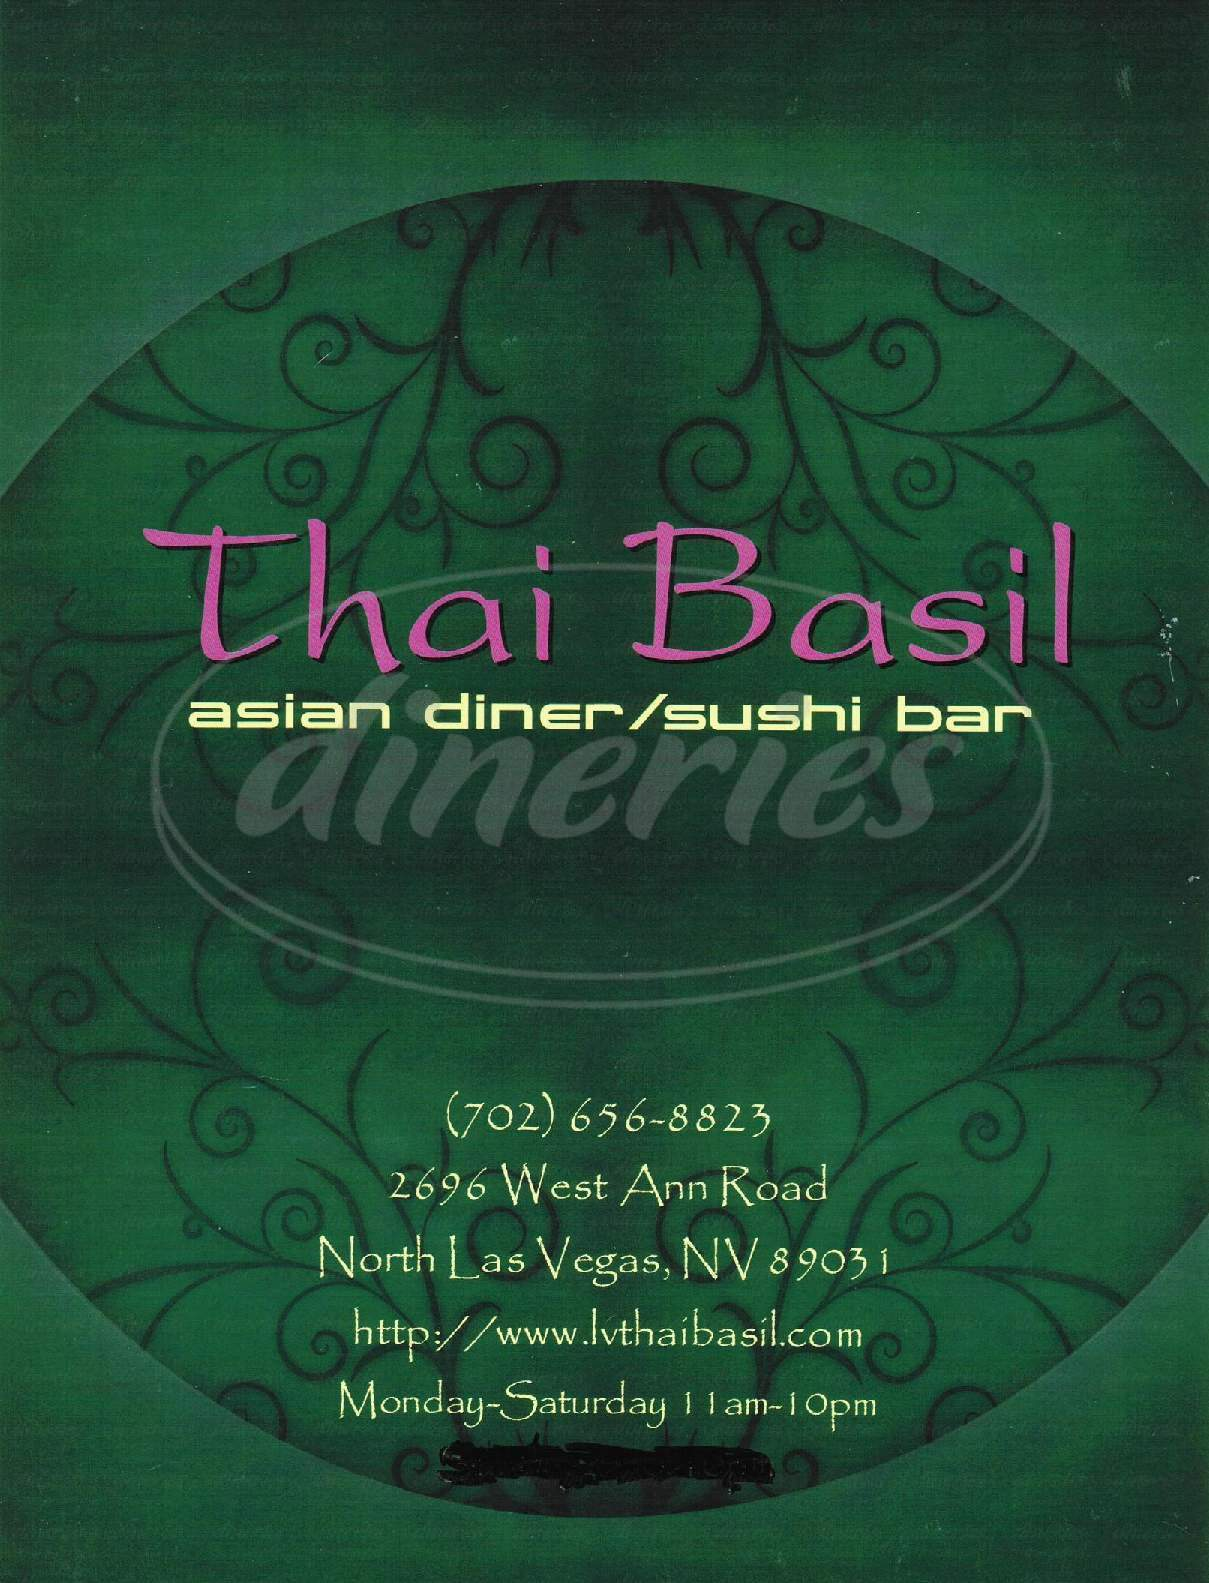 menu for Thai Basil